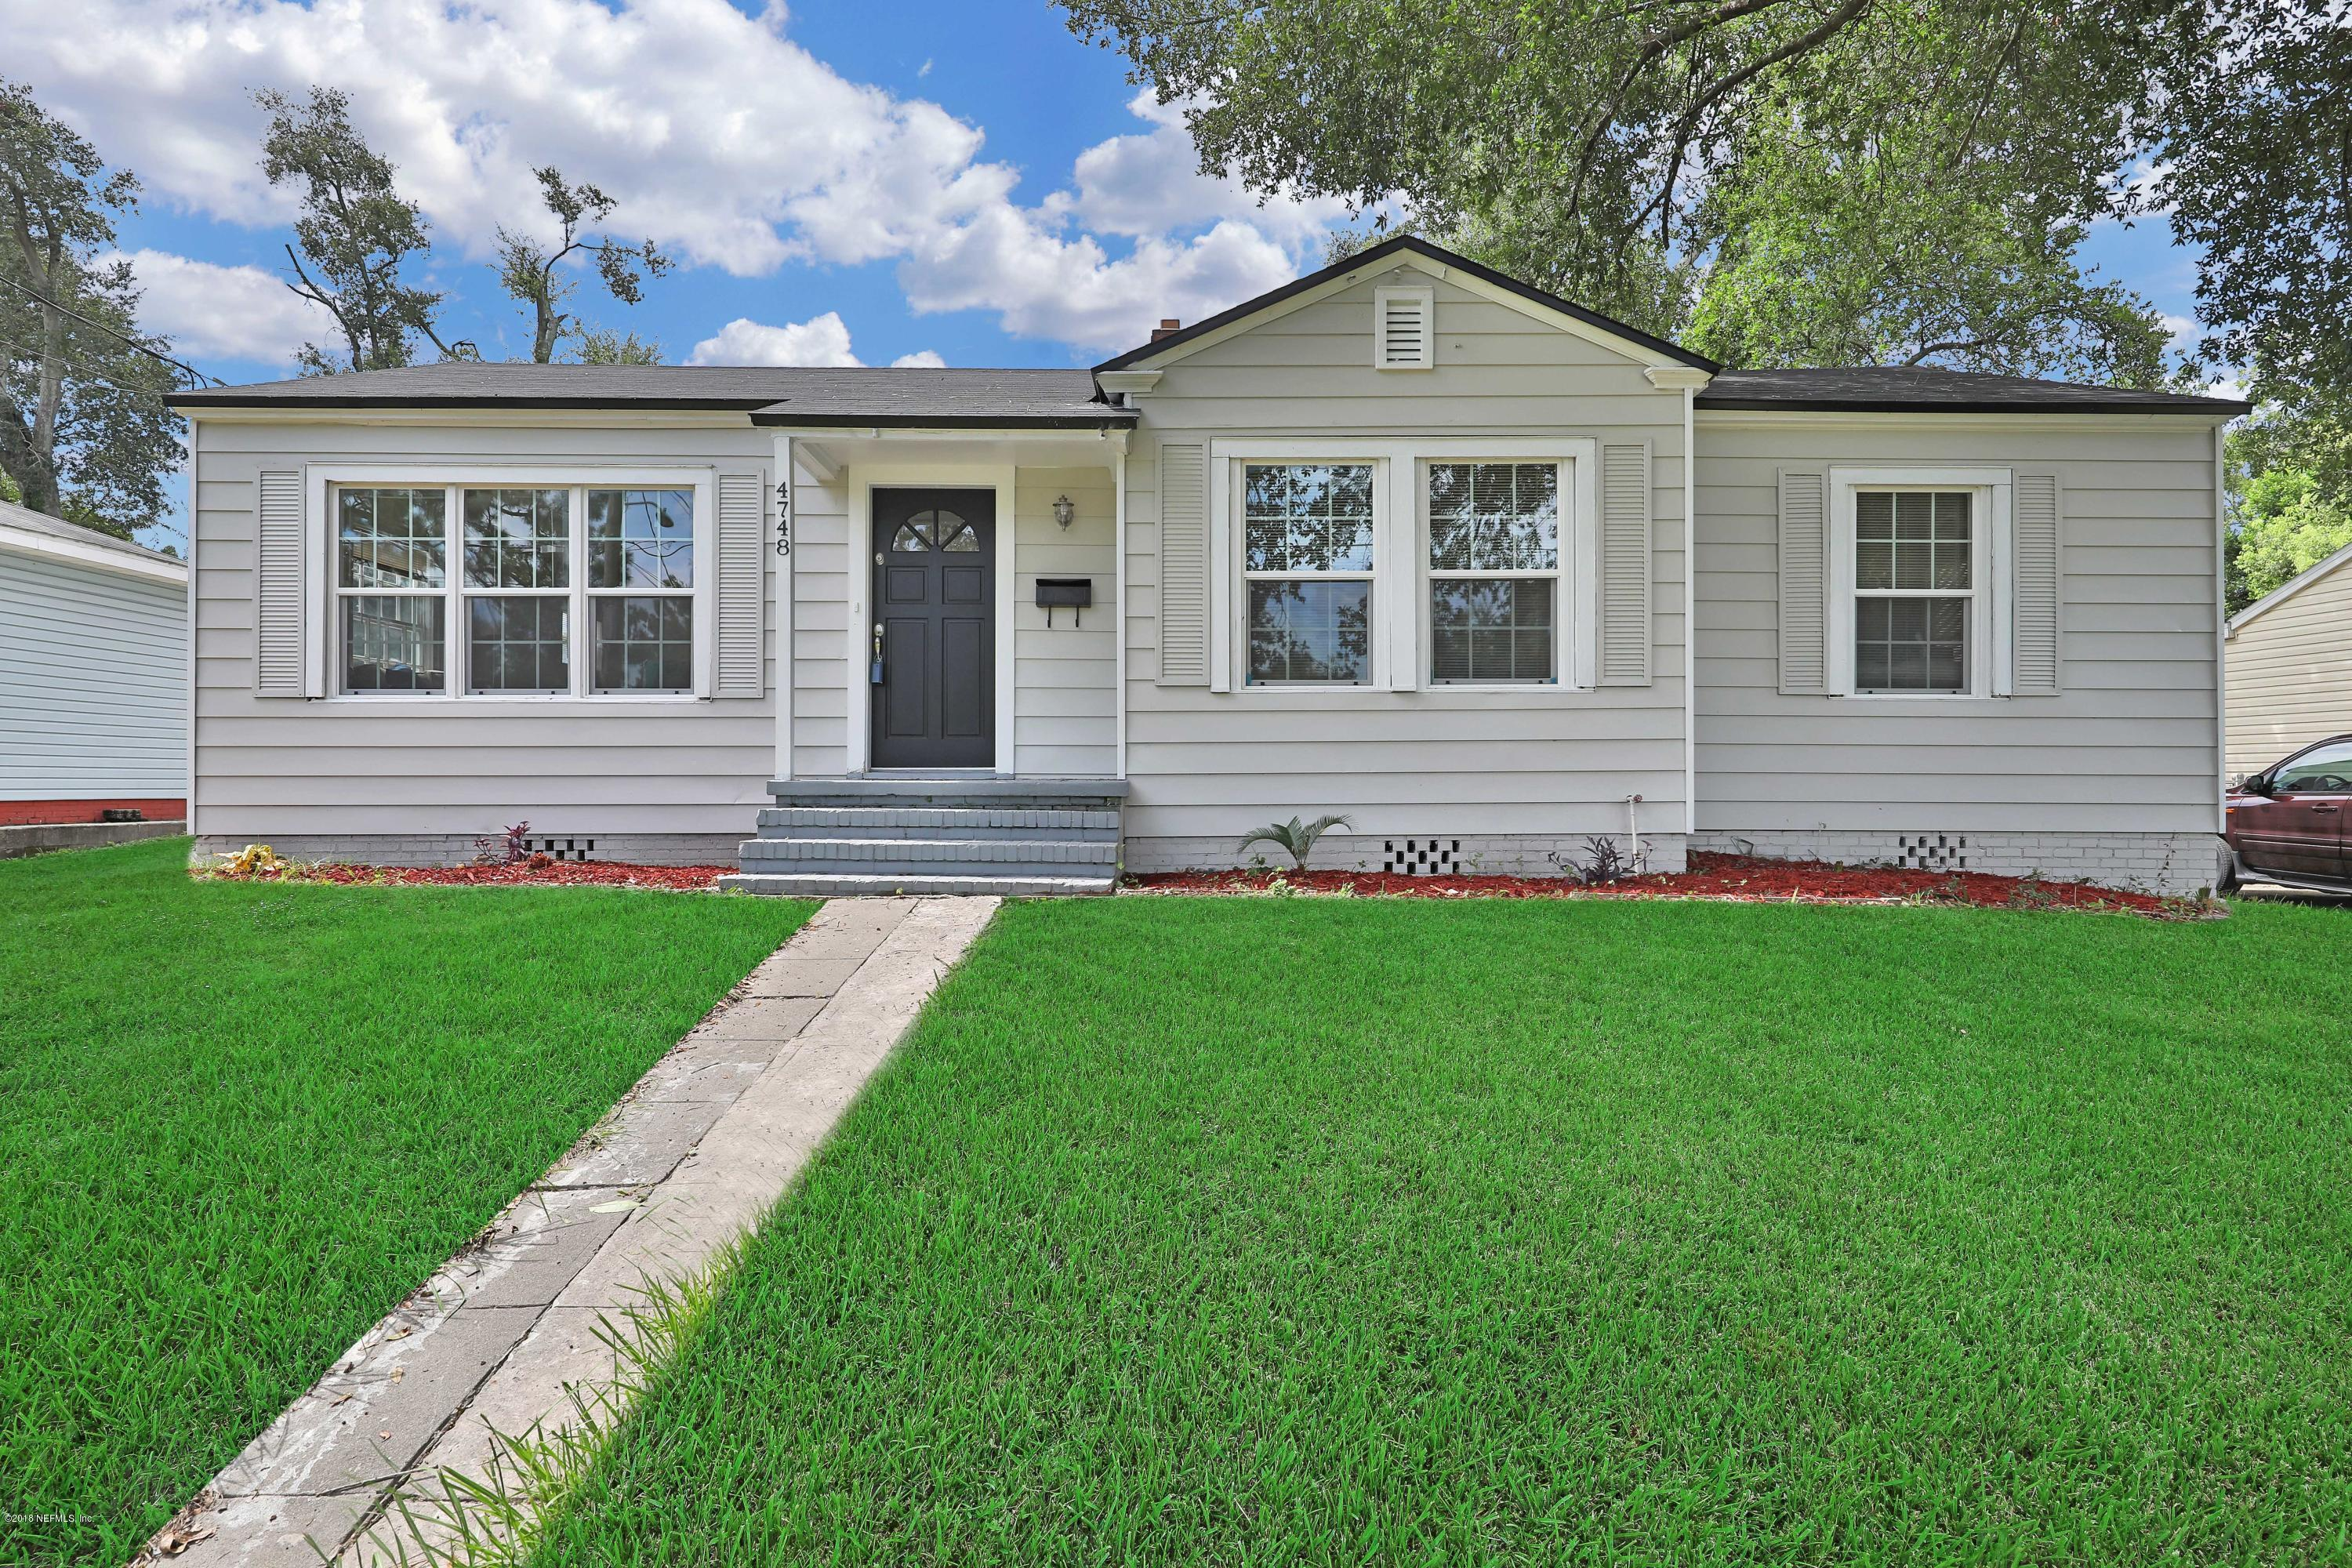 4748 MANCHESTER, JACKSONVILLE, FLORIDA 32210, 3 Bedrooms Bedrooms, ,1 BathroomBathrooms,Residential - single family,For sale,MANCHESTER,952048